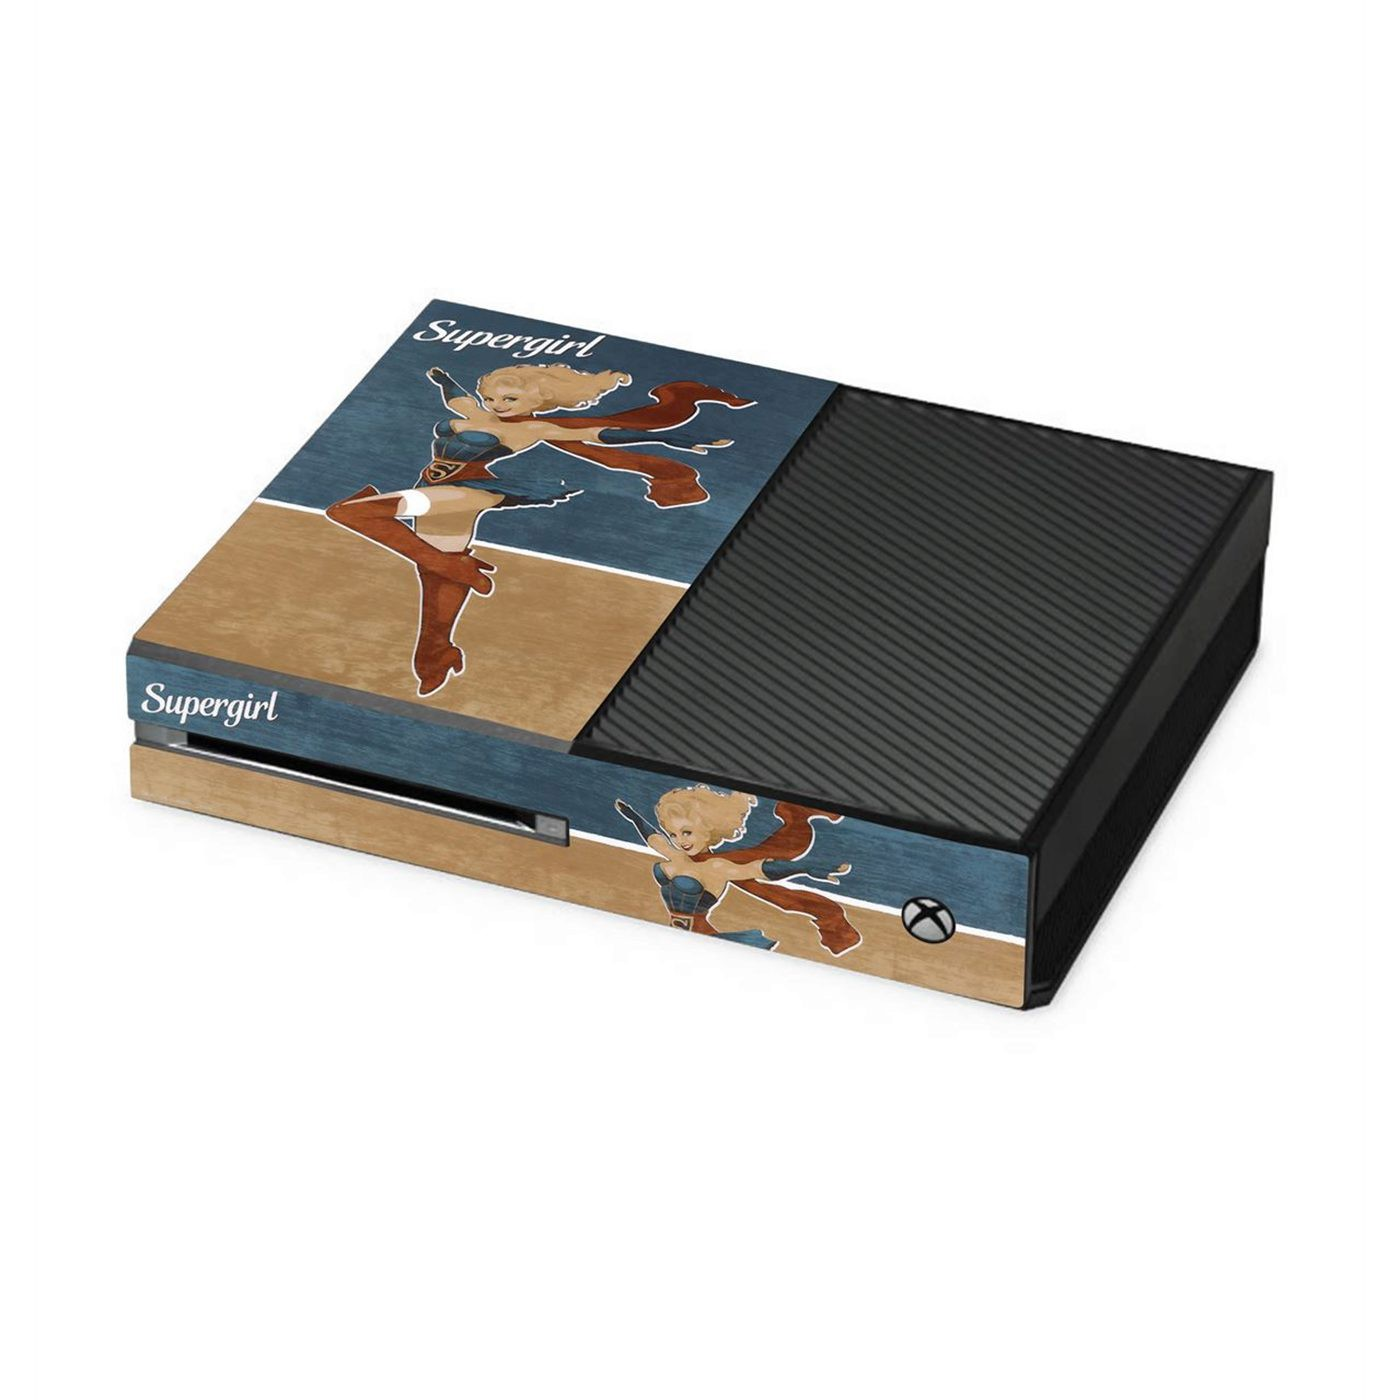 Supergirl Bombshell Xbox One Console Skin